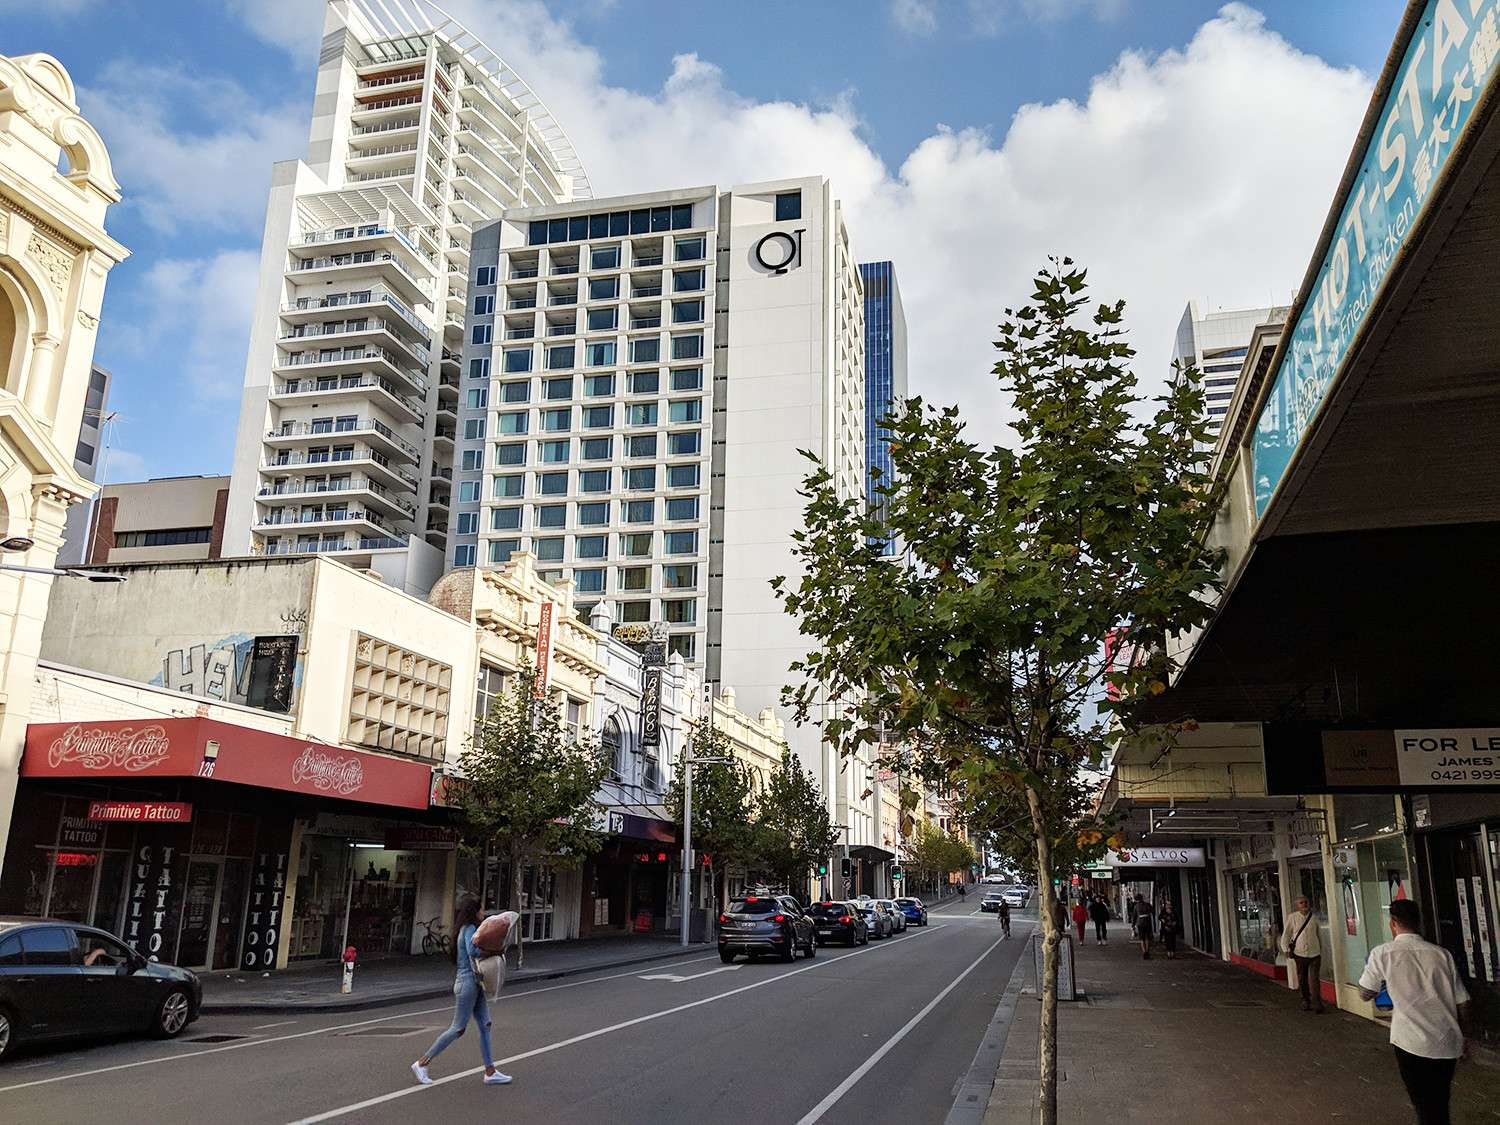 qt-hotel-perth-street-view